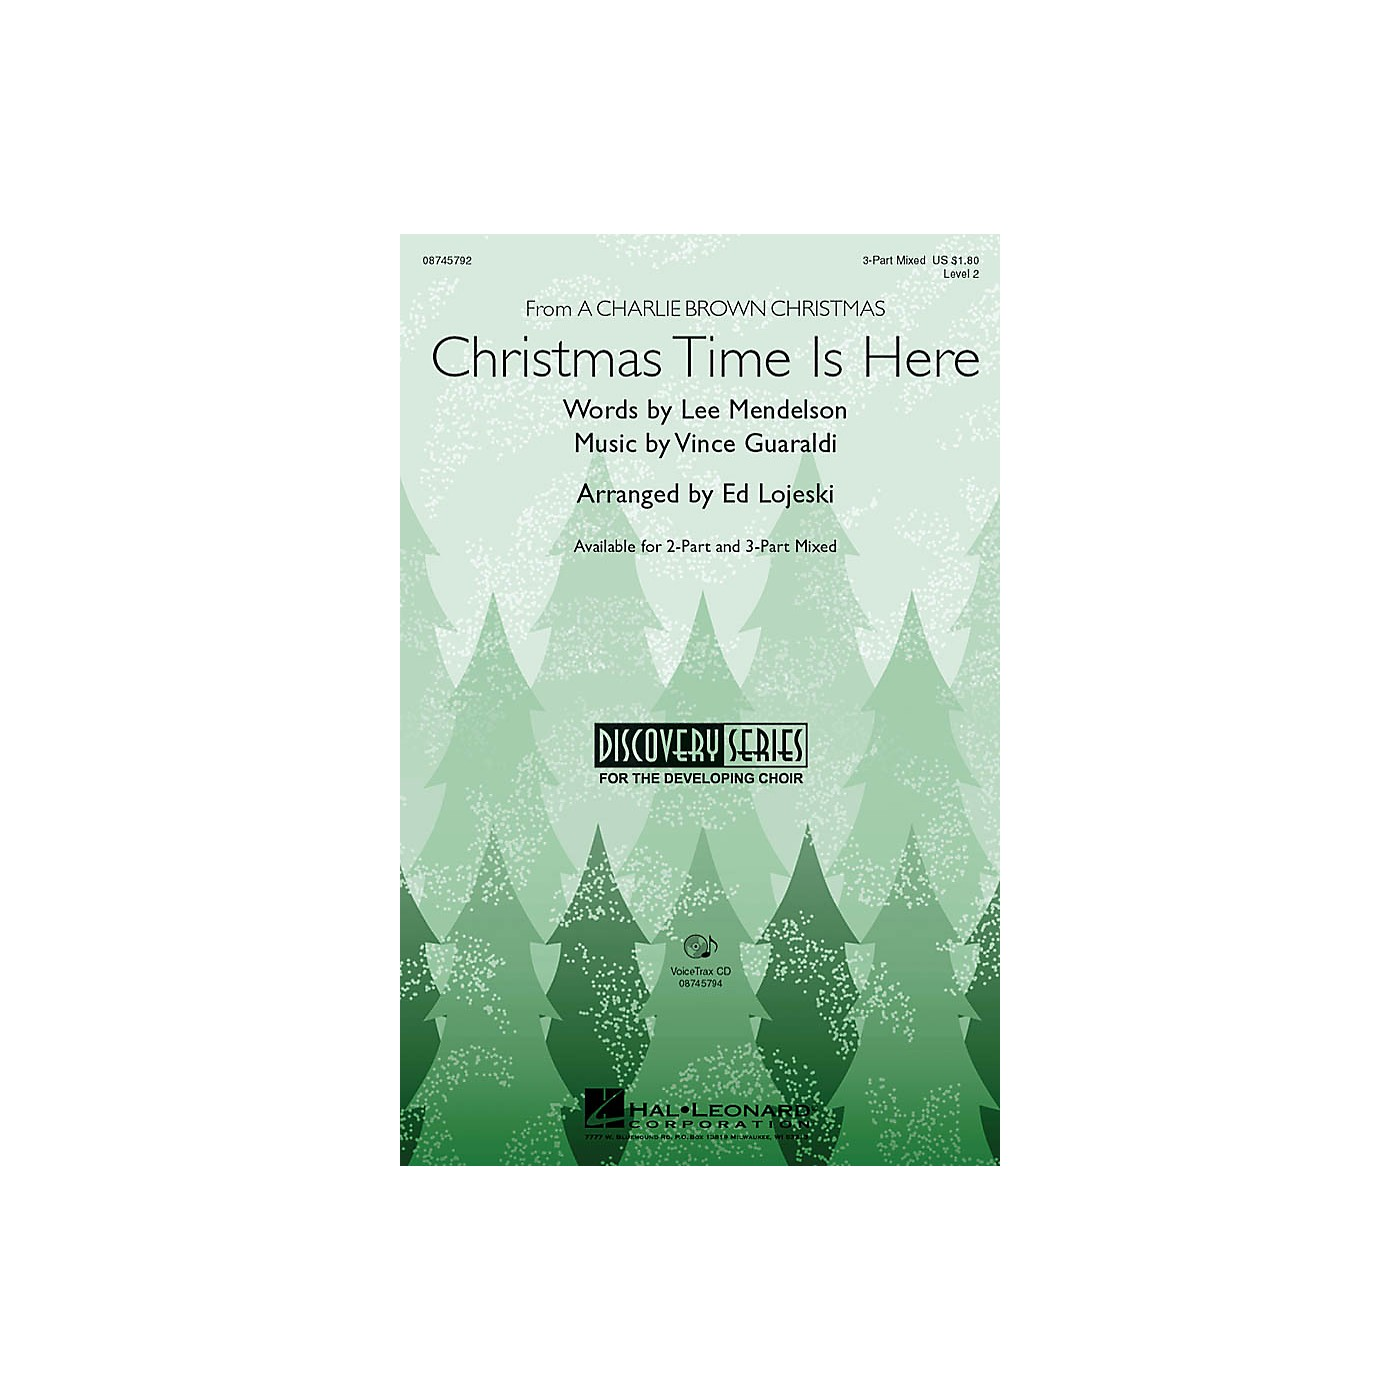 Hal Leonard Christmas Time Is Here 3-Part Mixed arranged by Ed Lojeski thumbnail